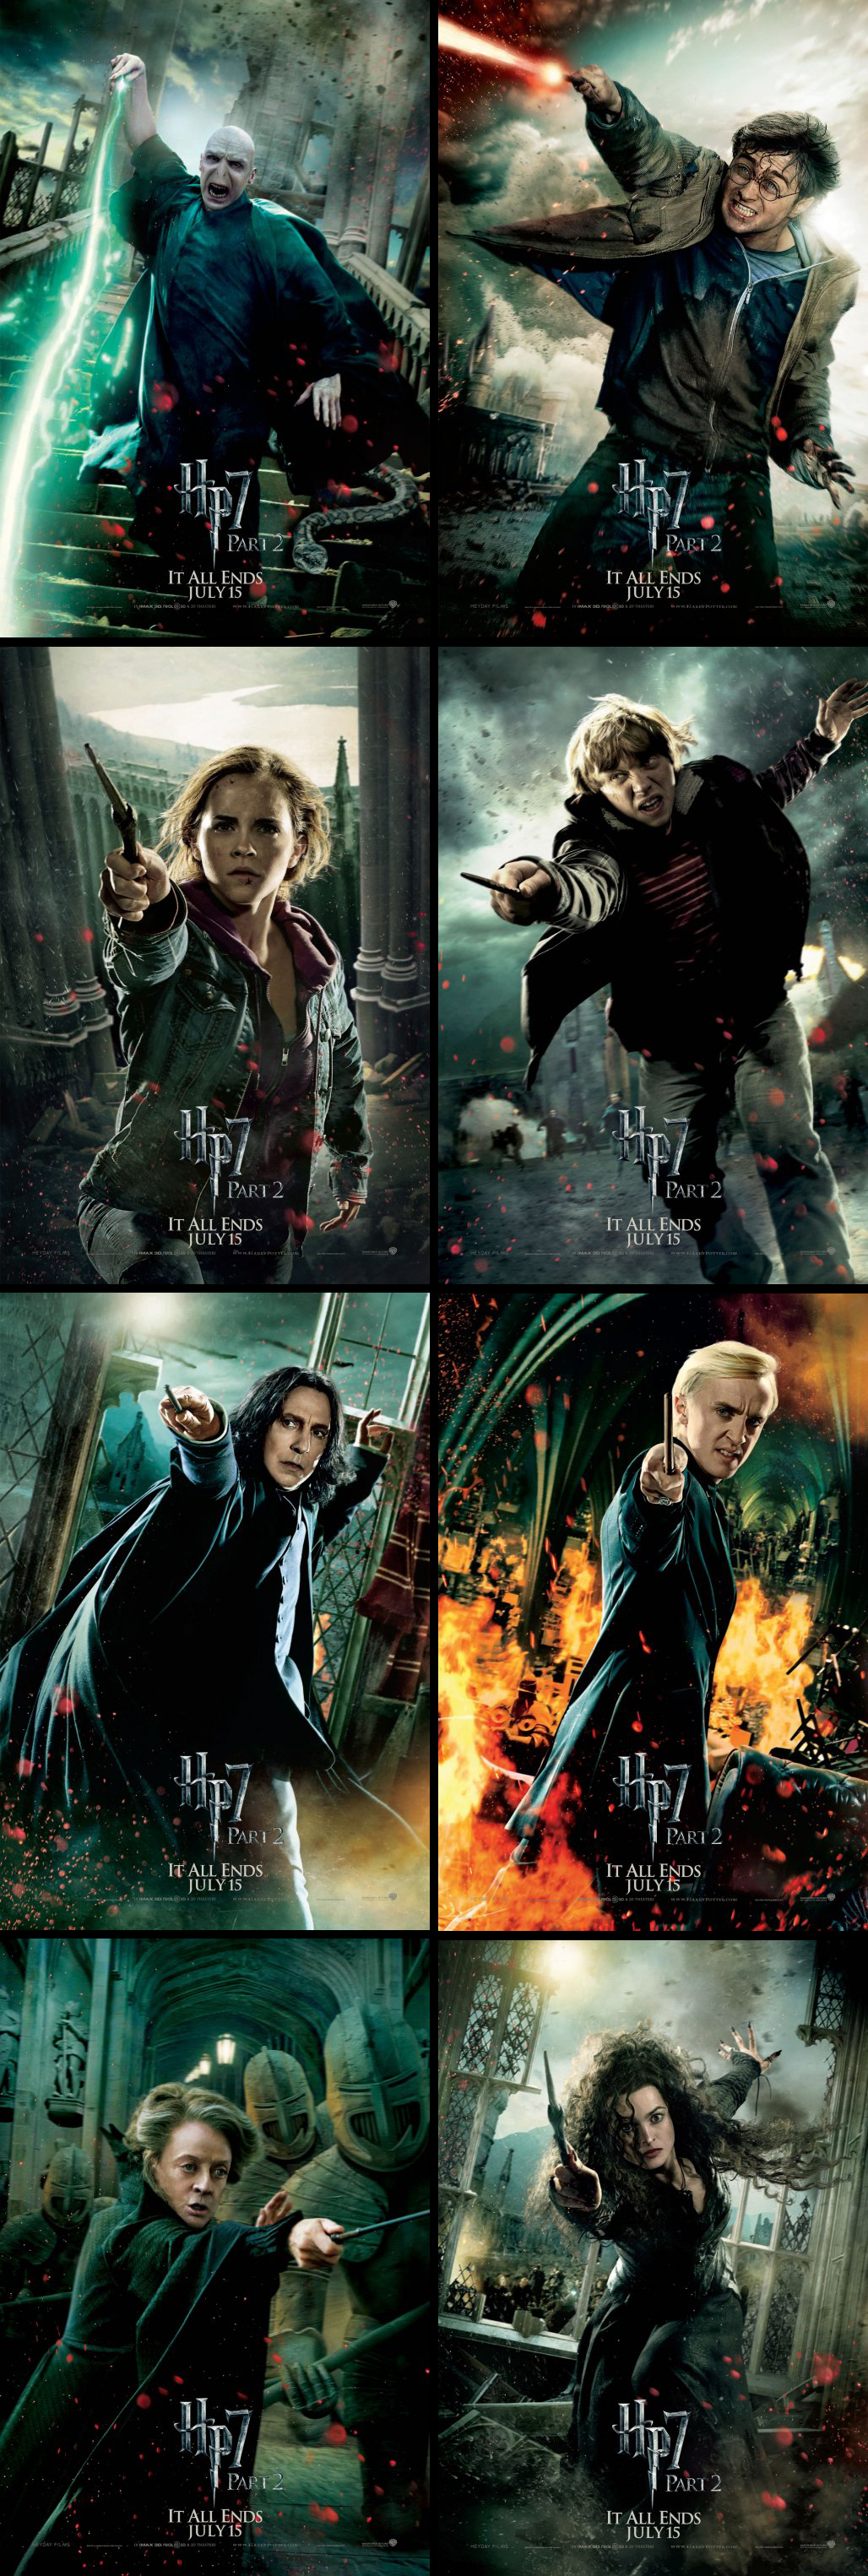 Action-packed teaser poster series from Harry Potter and the Deathly Hallows Part 2 (2011)